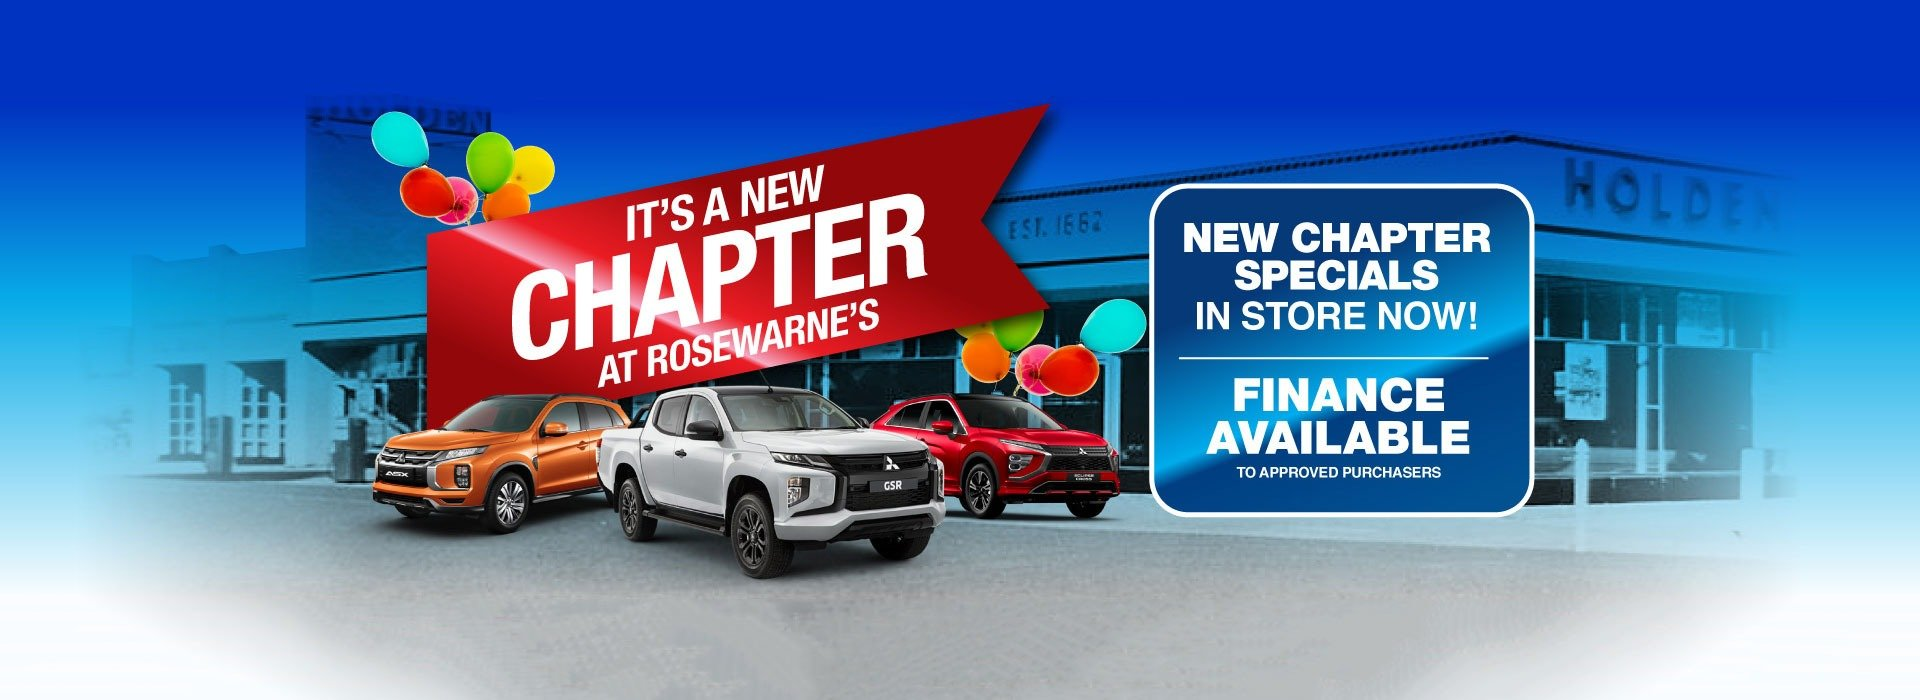 Rosewarnes Mitsubishi | All New Chapter Special!